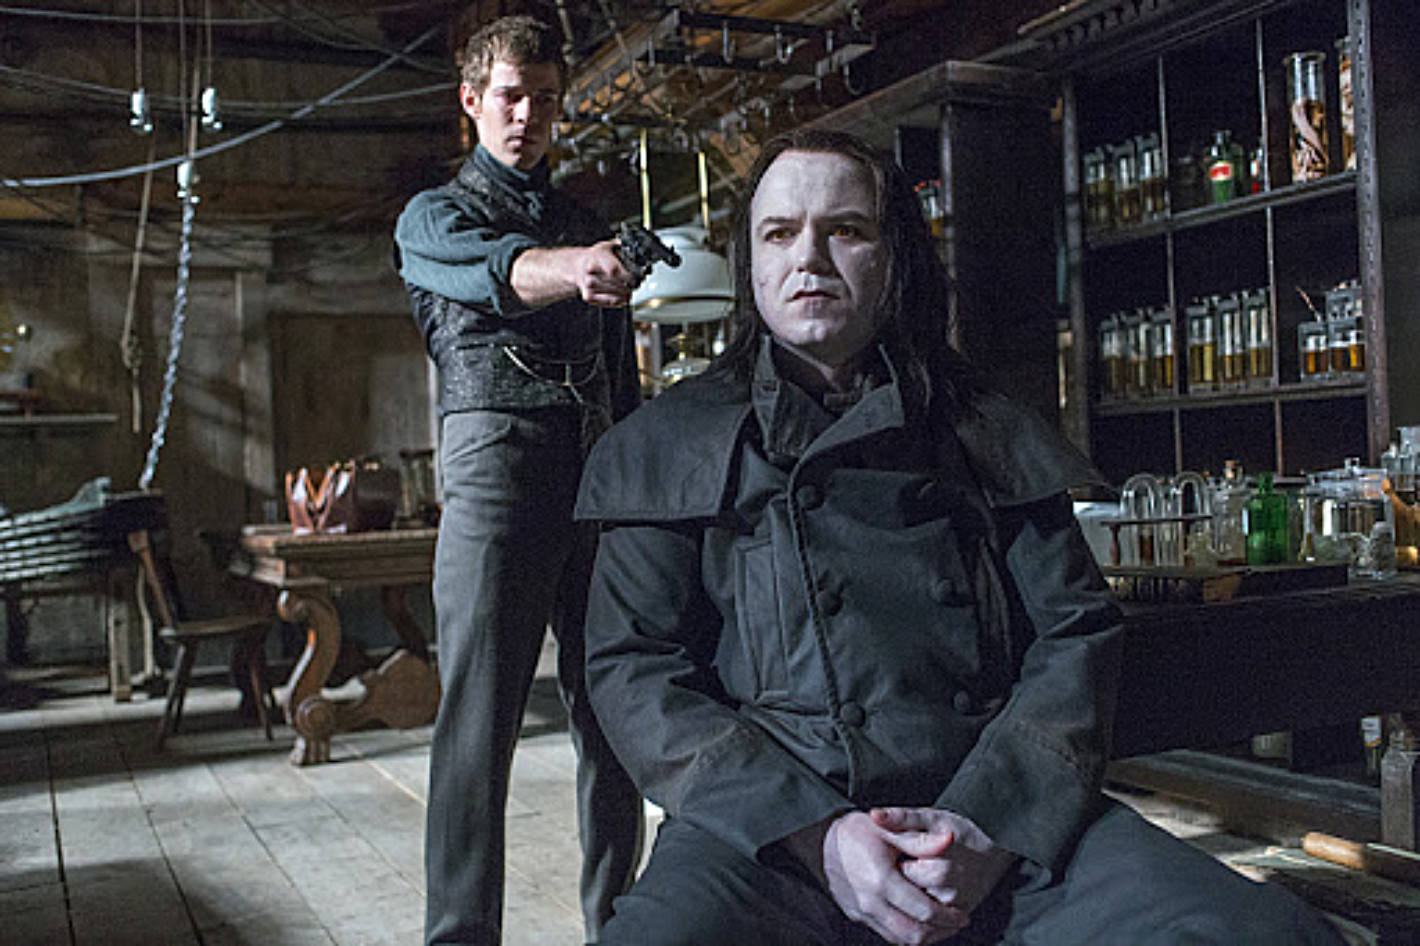 Harry Treadaway as Dr. Victor Frankenstein and Rory Kinnear as the creature in Penny Dreadful (season 1, episode 8). - Photo: Jonathan Hession/SHOWTIME - Photo ID: PennyDreadful_108_1469